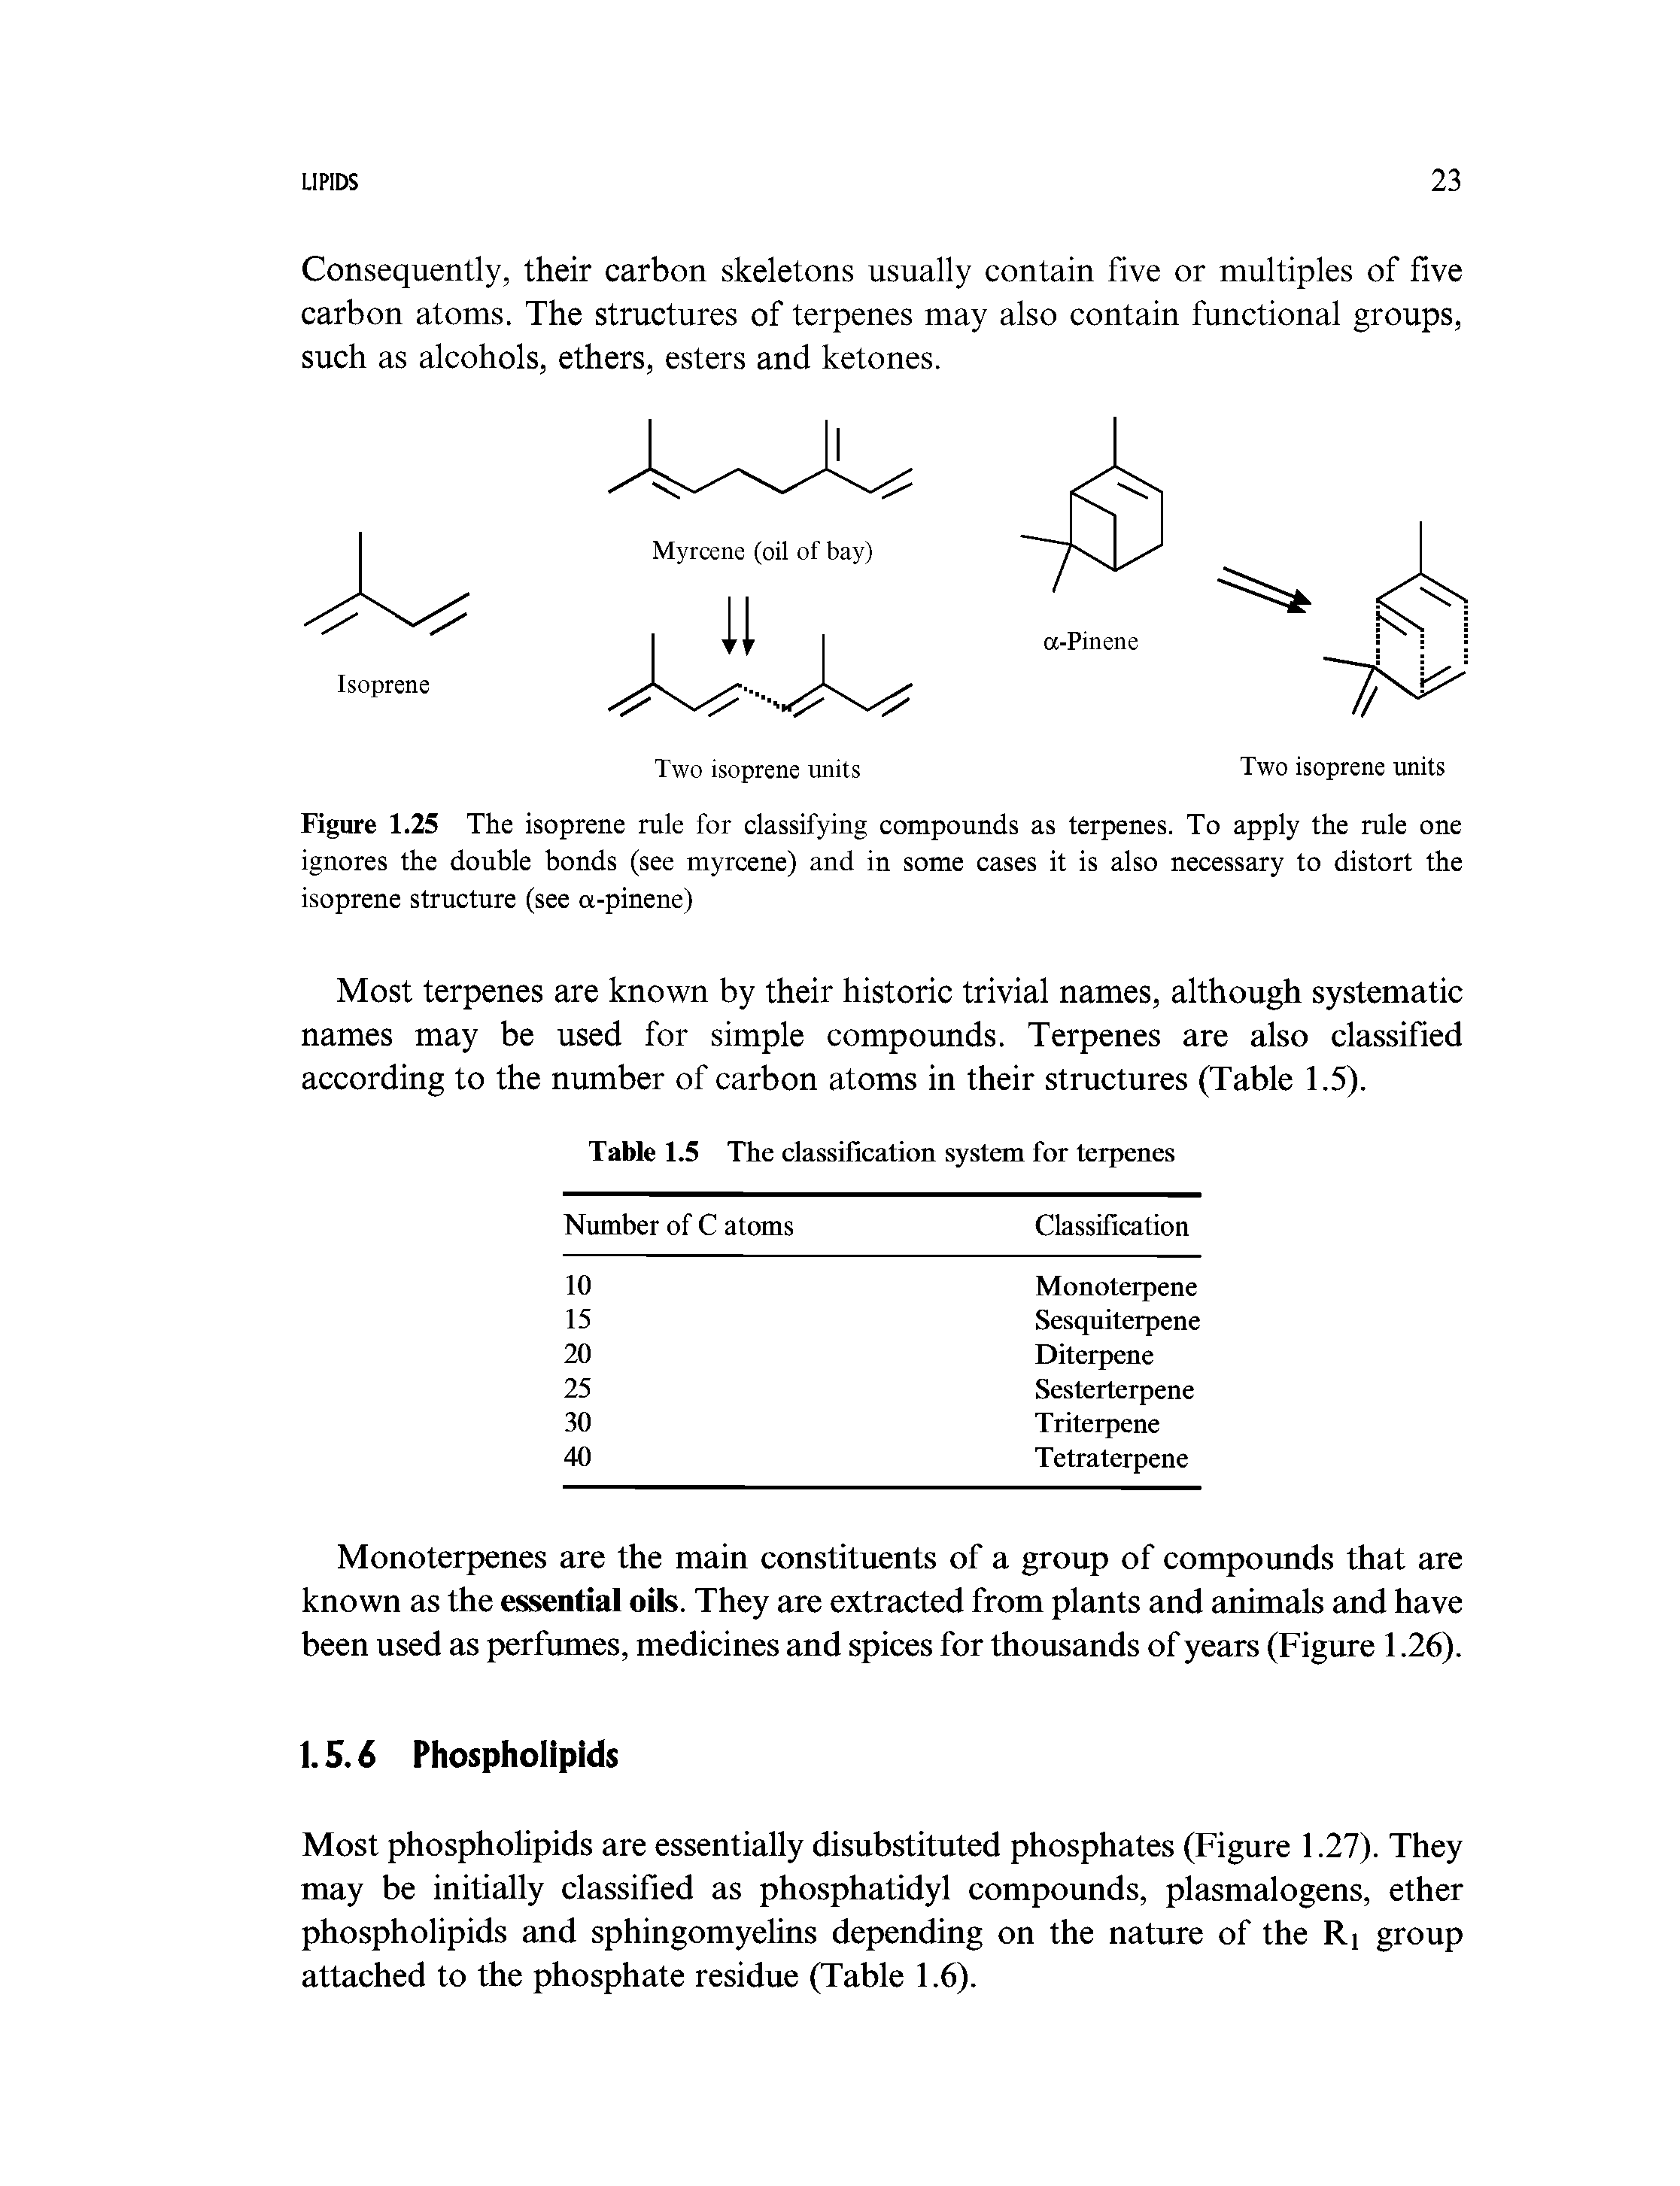 "Figure 1.25 The <a href=""/info/isoprene_rule"">isoprene rule</a> for classifying compounds as terpenes. To apply the rule one ignores the <a href=""/info/bonds_double"">double bonds</a> (see myrcene) and in some cases it is also necessary to distort the <a href=""/info/isoprene_structure"">isoprene structure</a> (see a-pinene)"